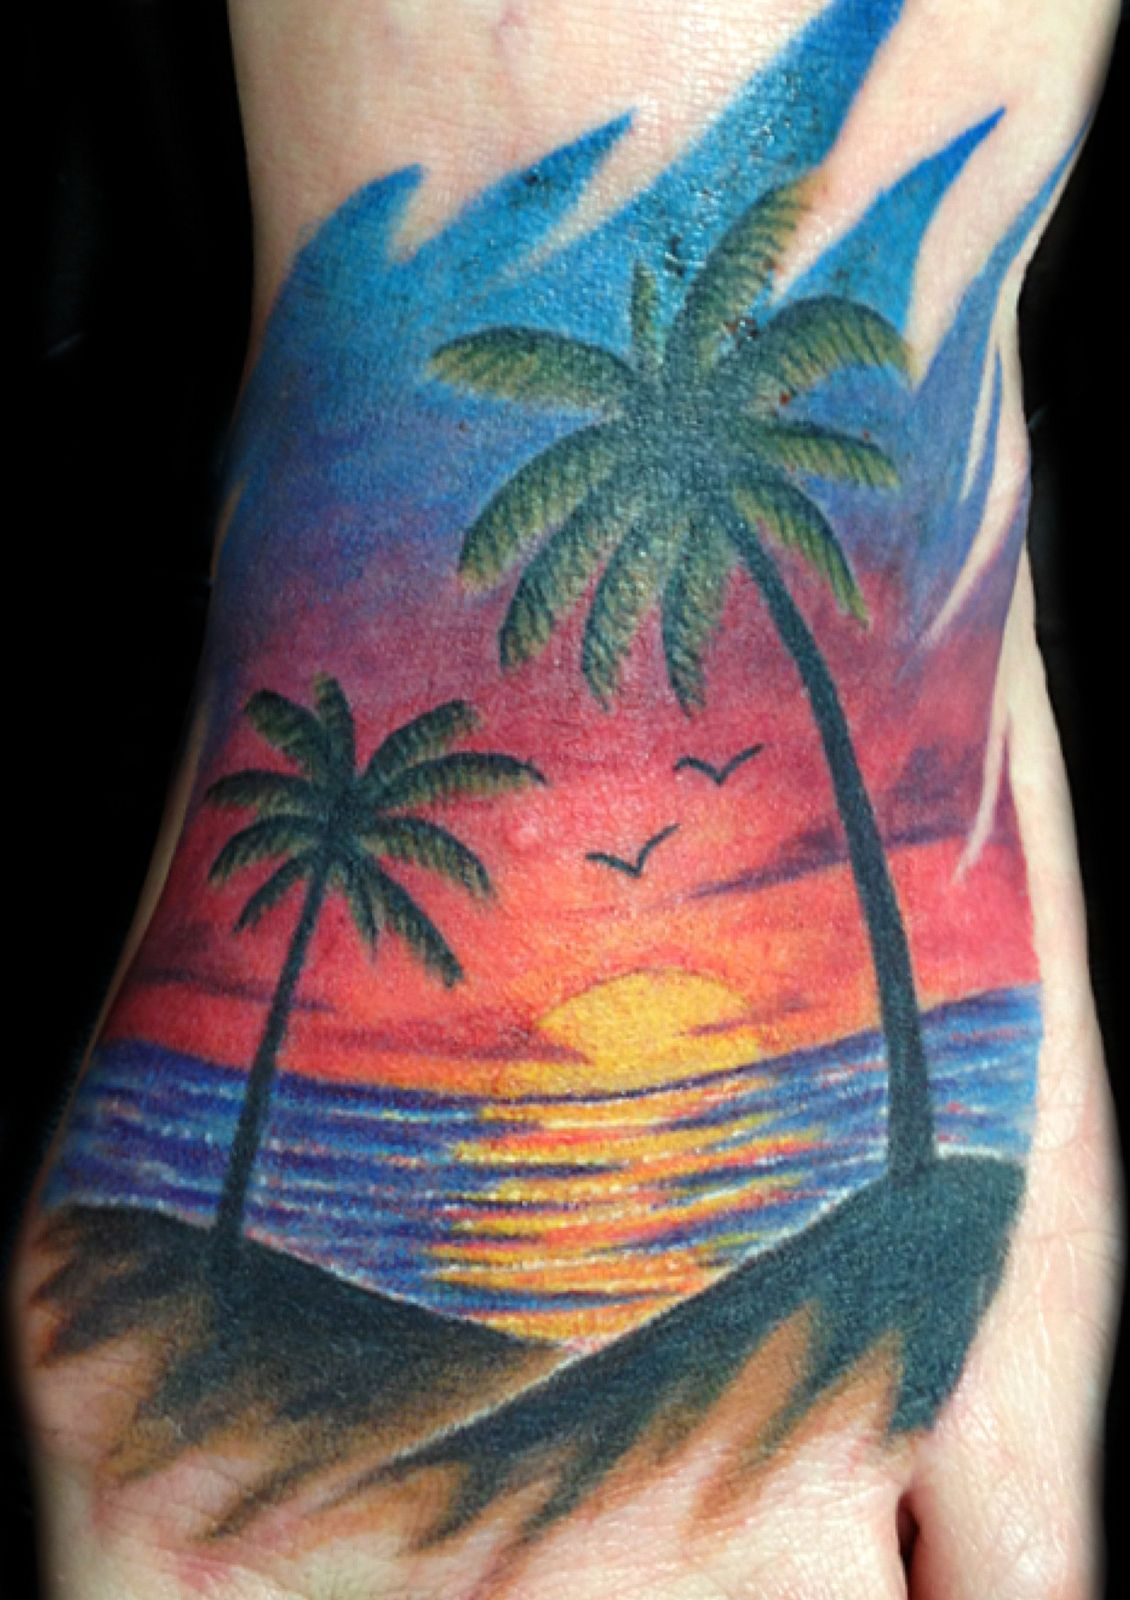 freehand beach sunset with palm trees sunset tattoos karma tattoos and custom tattoo. Black Bedroom Furniture Sets. Home Design Ideas